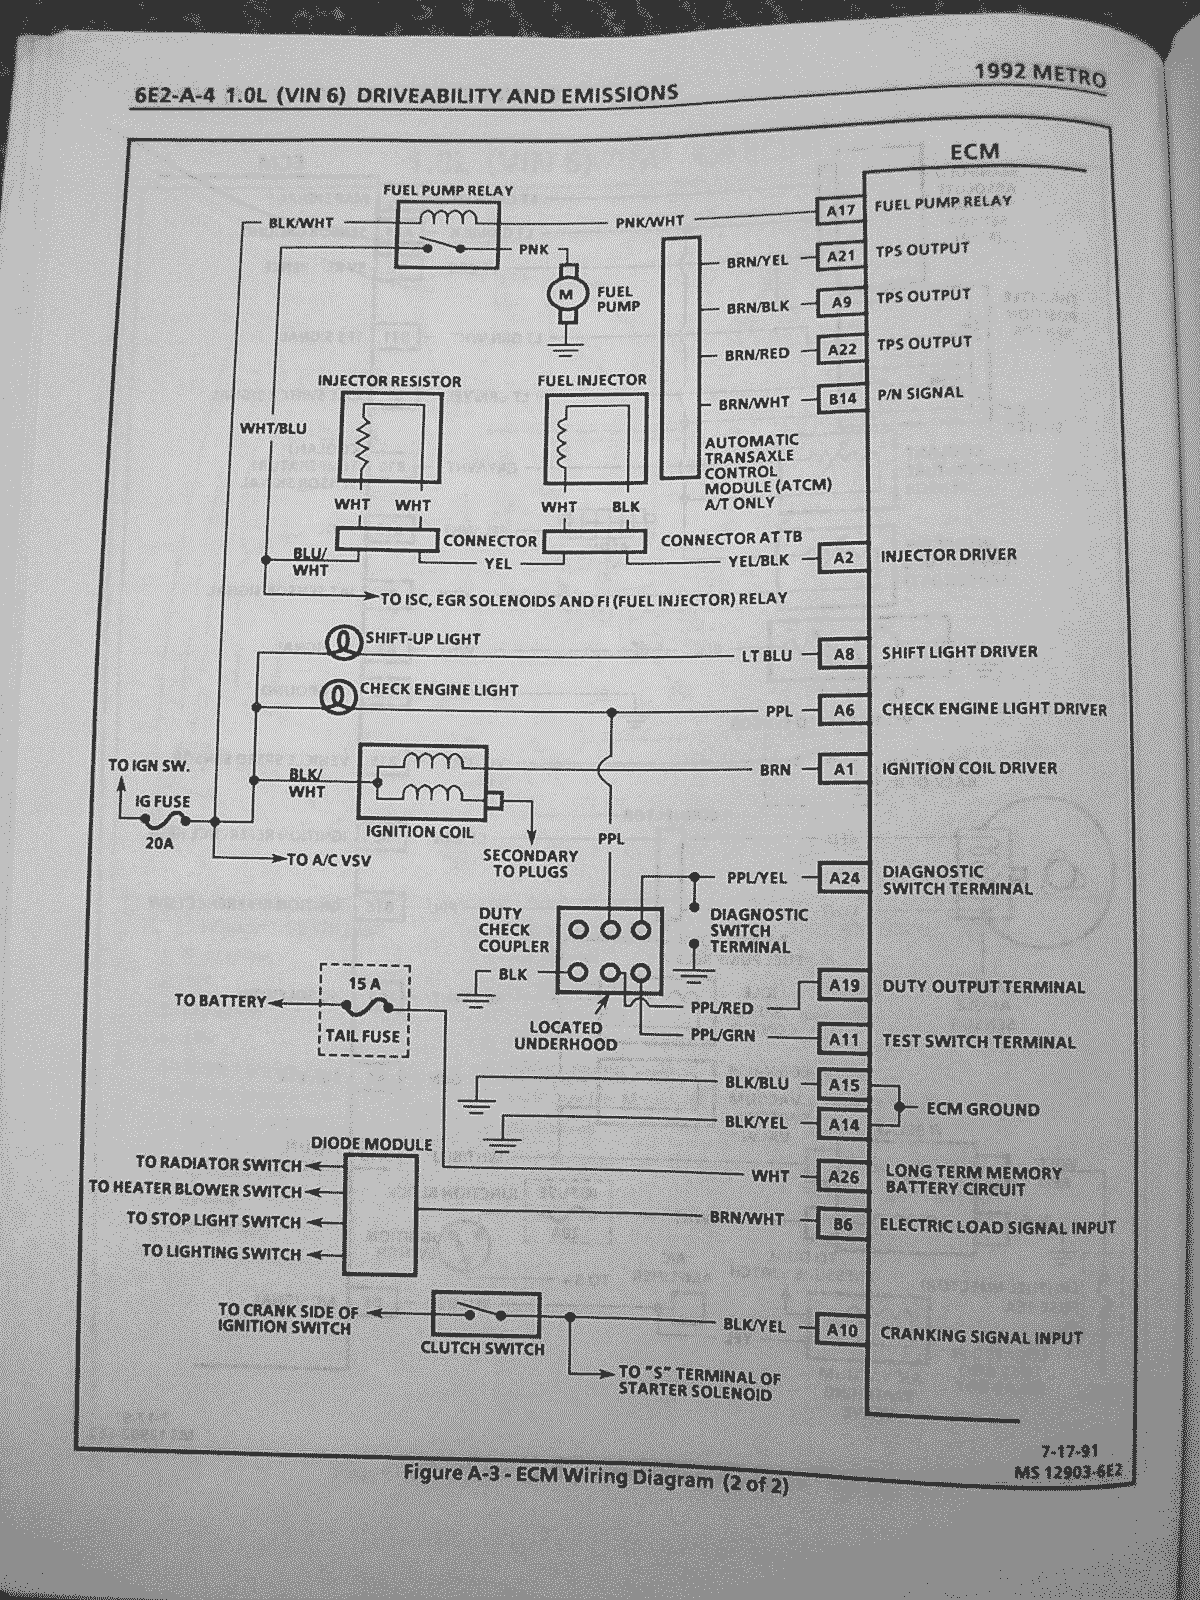 6e2 a 4 geo metro and suzuki swift wiring diagrams metroxfi com on swift wiring diagram